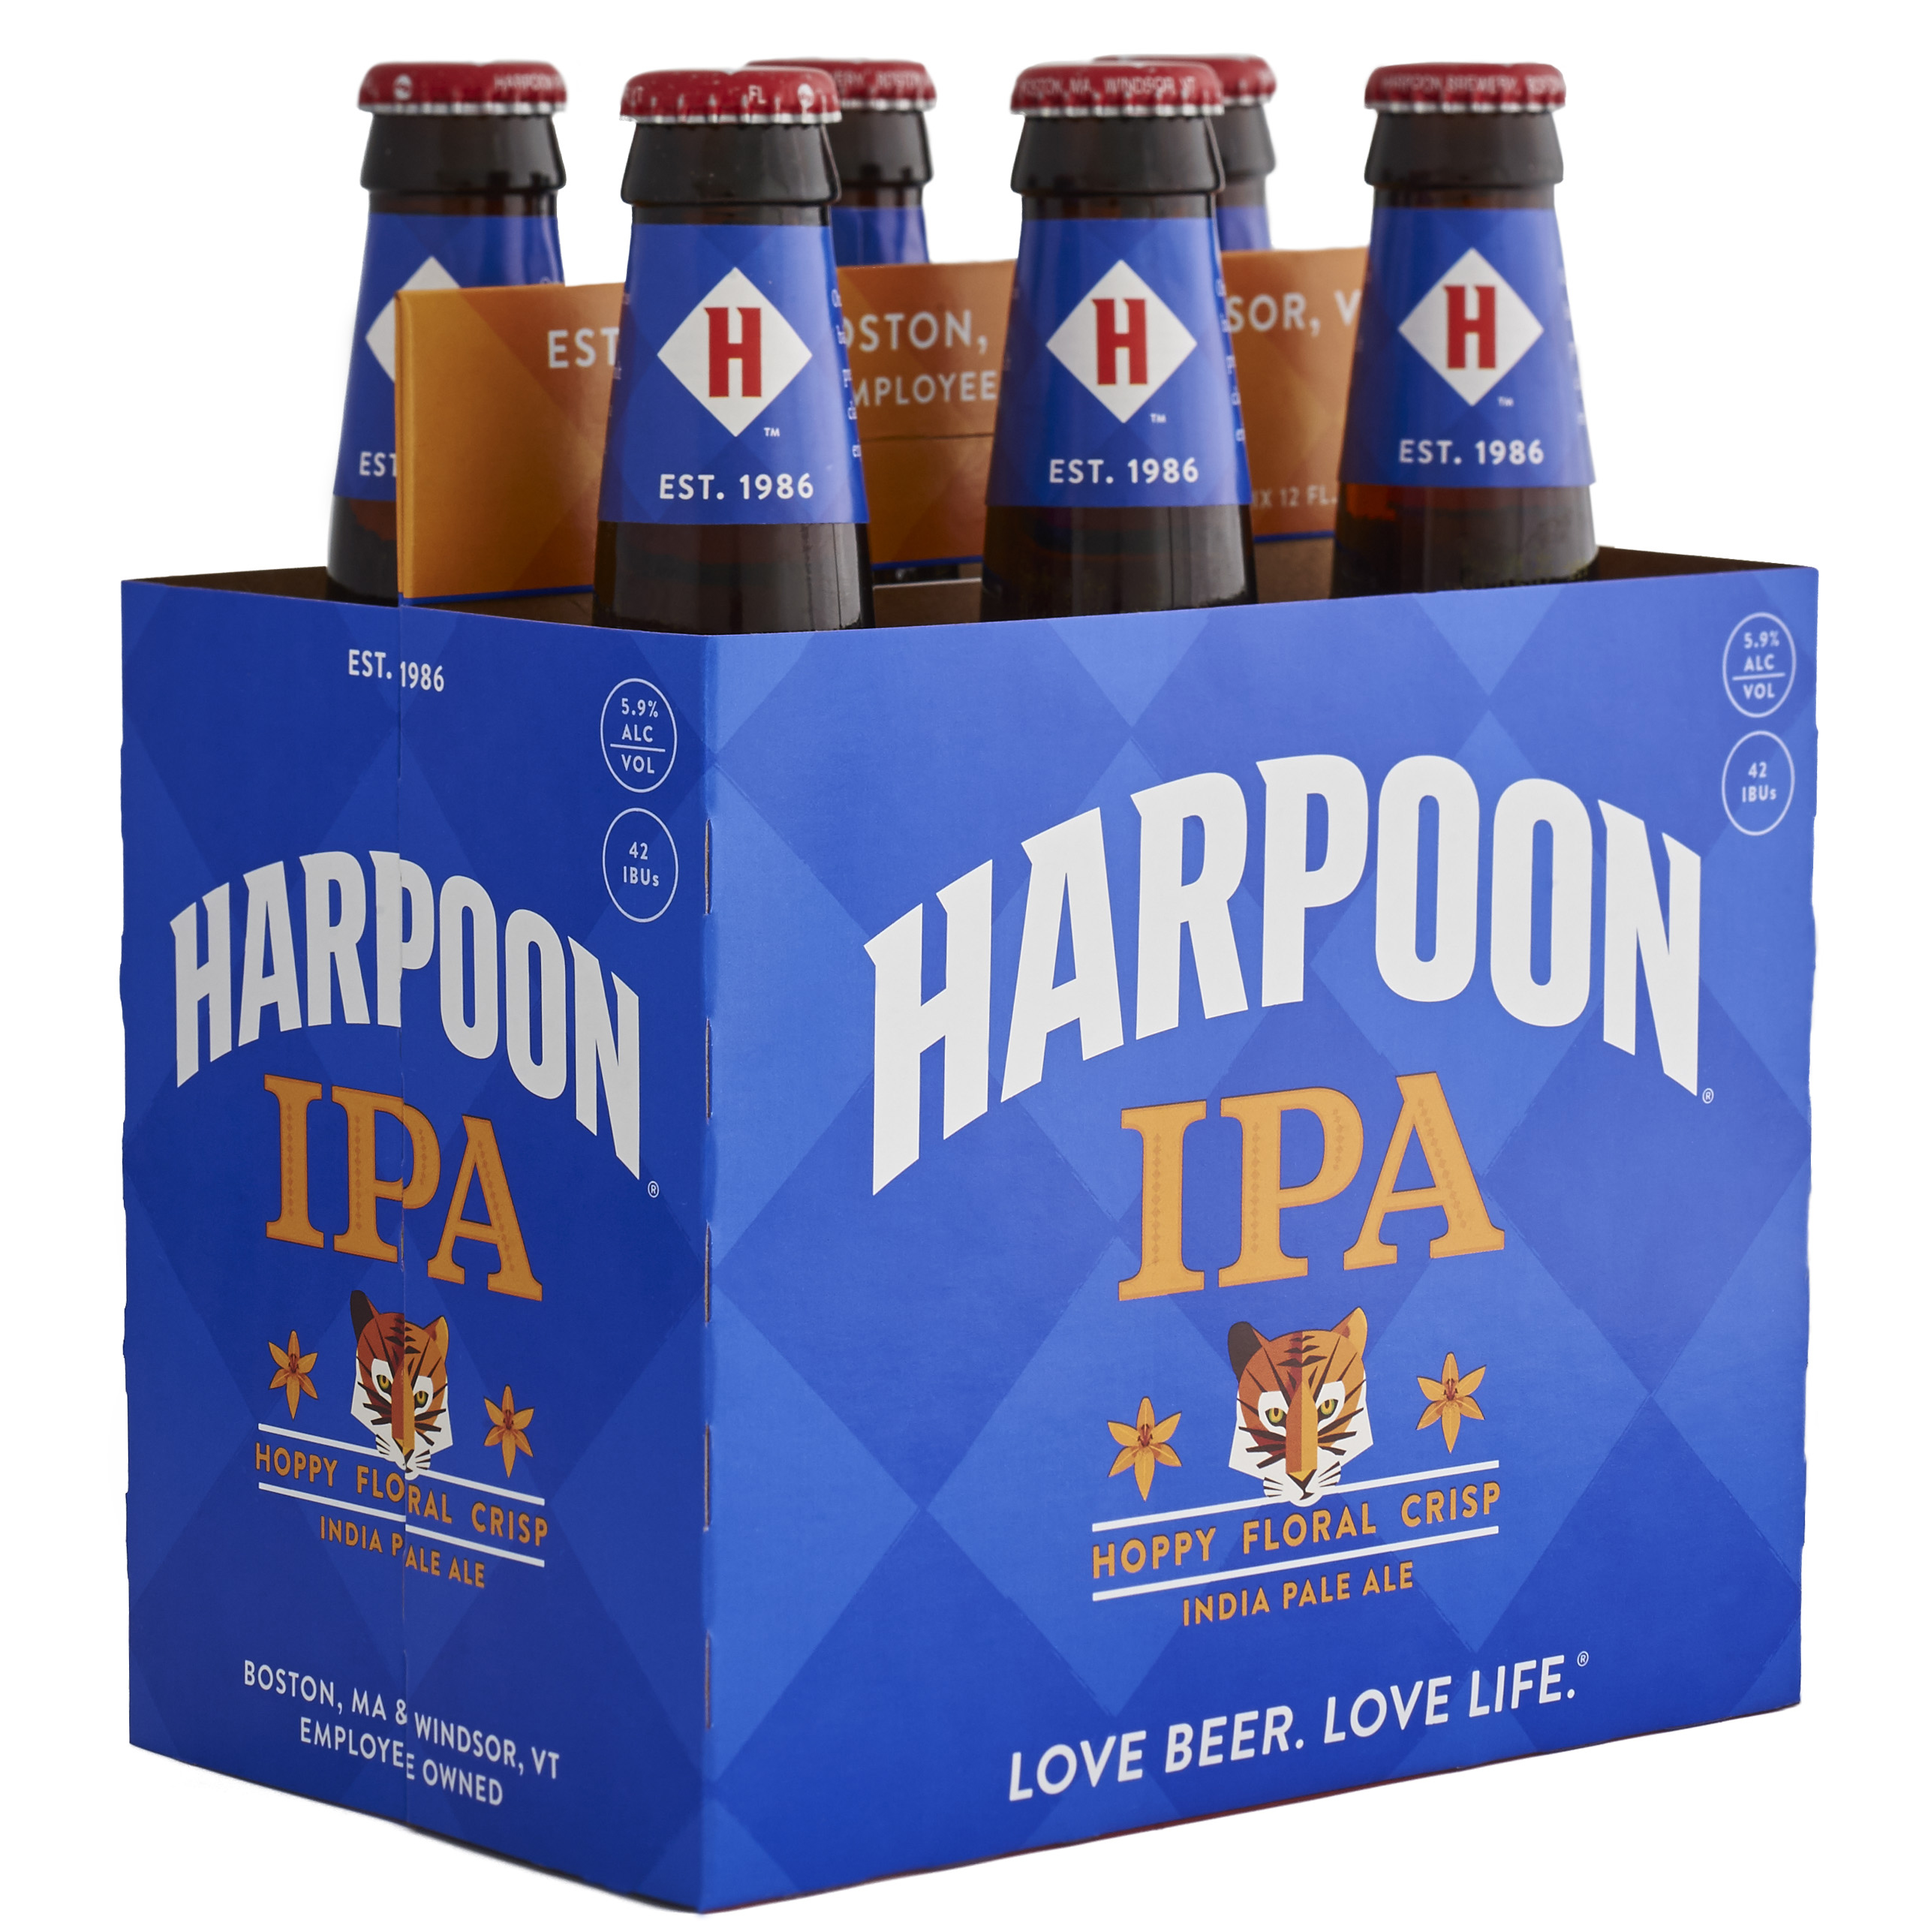 NEW-Harpoon-IPA-6-Pack-Bottles